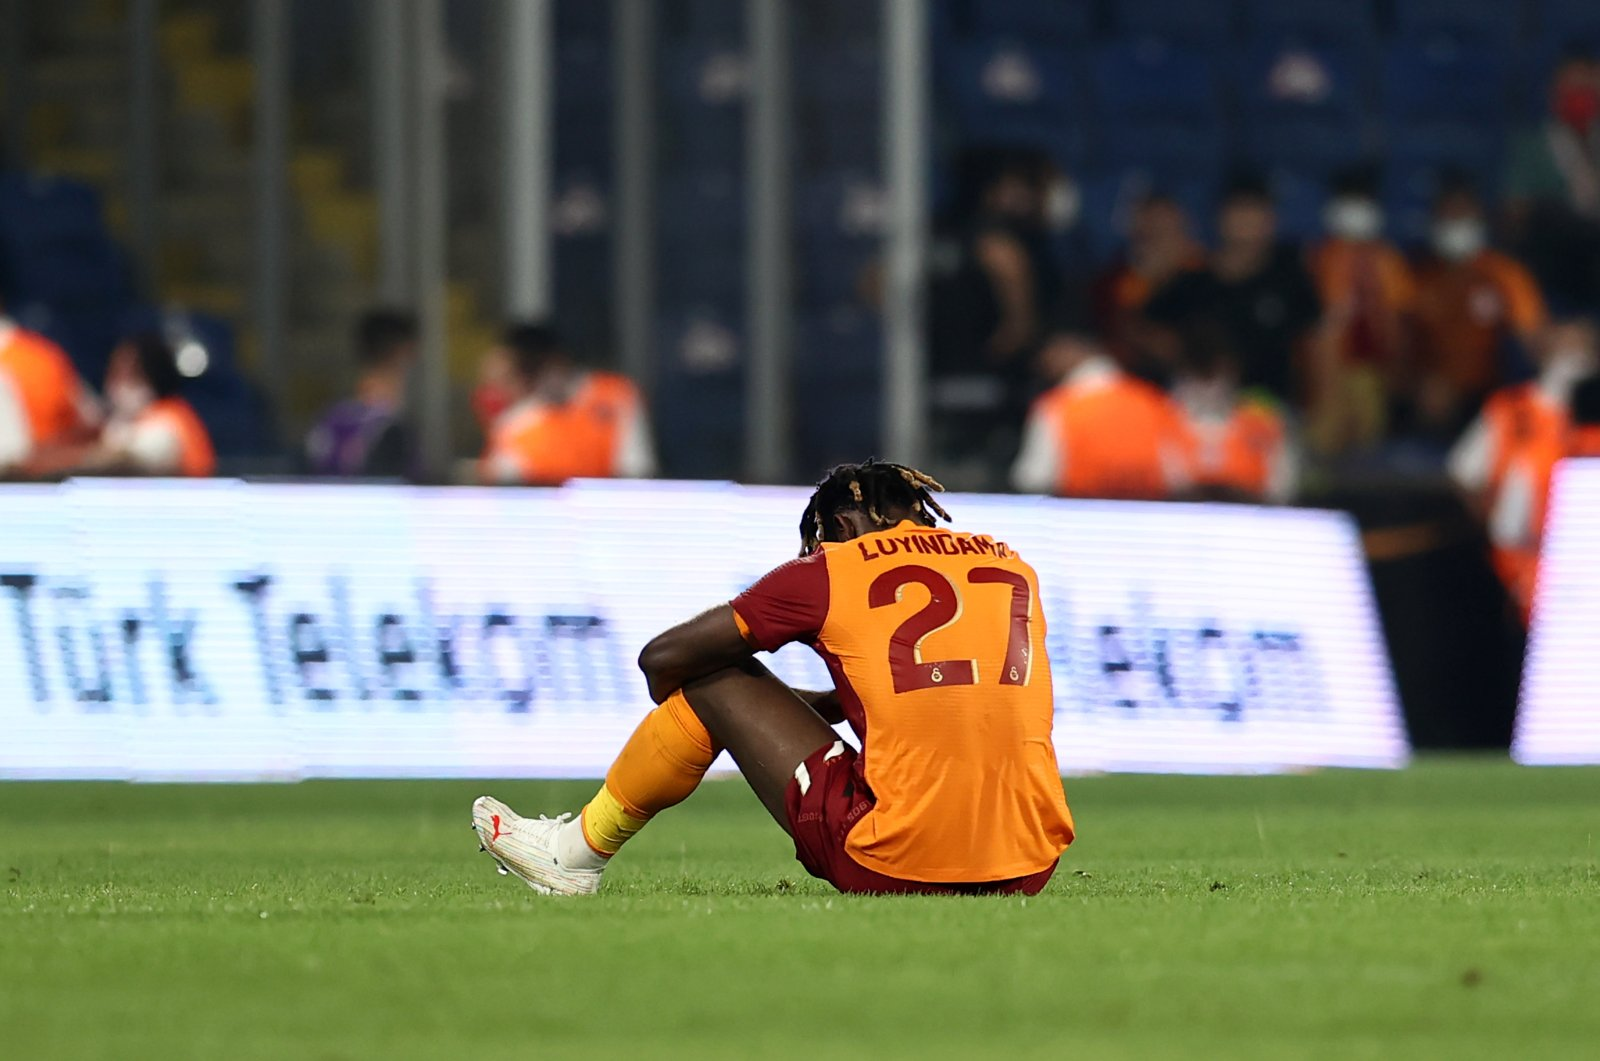 Galatasaray player Luyindama looks dejected after a 2-1 defeat against PSV Eindhoven at the Europea League qualifiers in Fatih Terim Stadium, Istanbul, Turkey, July 28, 2021. (AA Photo)